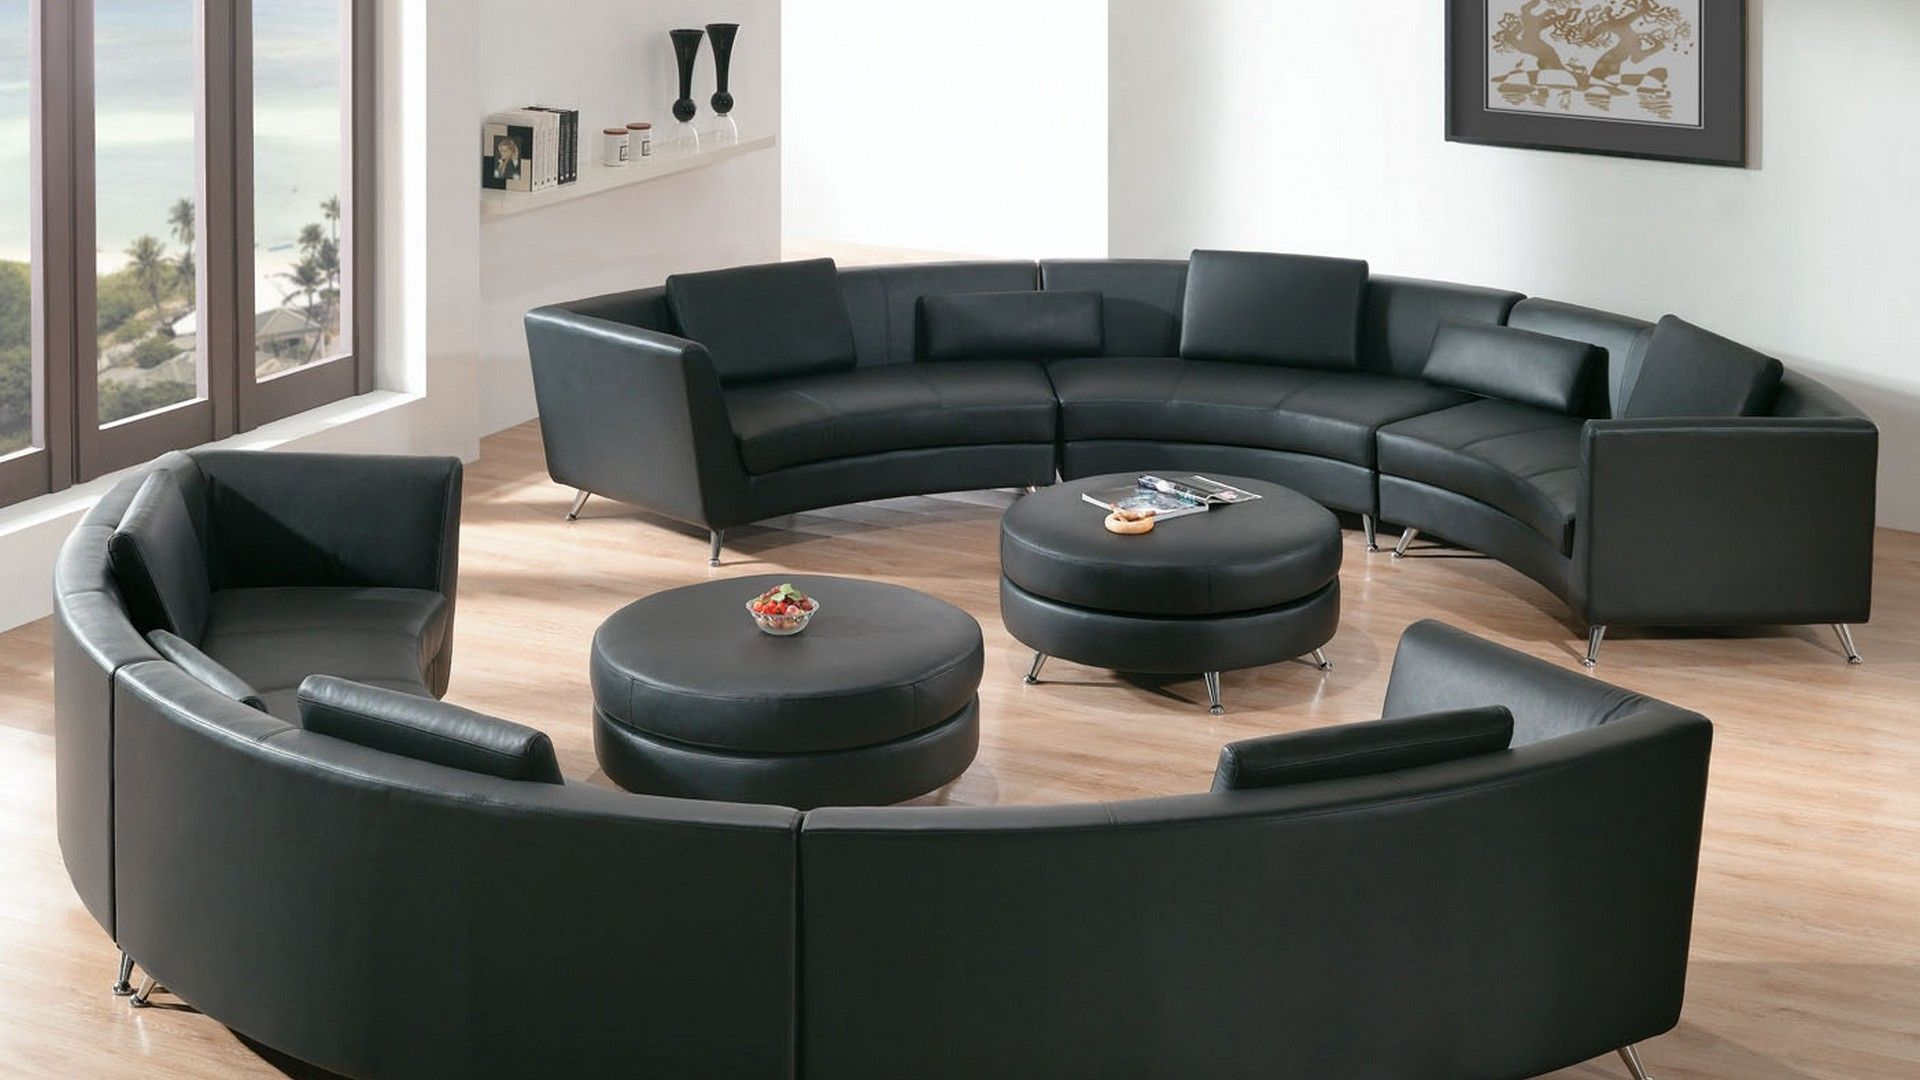 Two separated round sofa with double round tables include leather seats